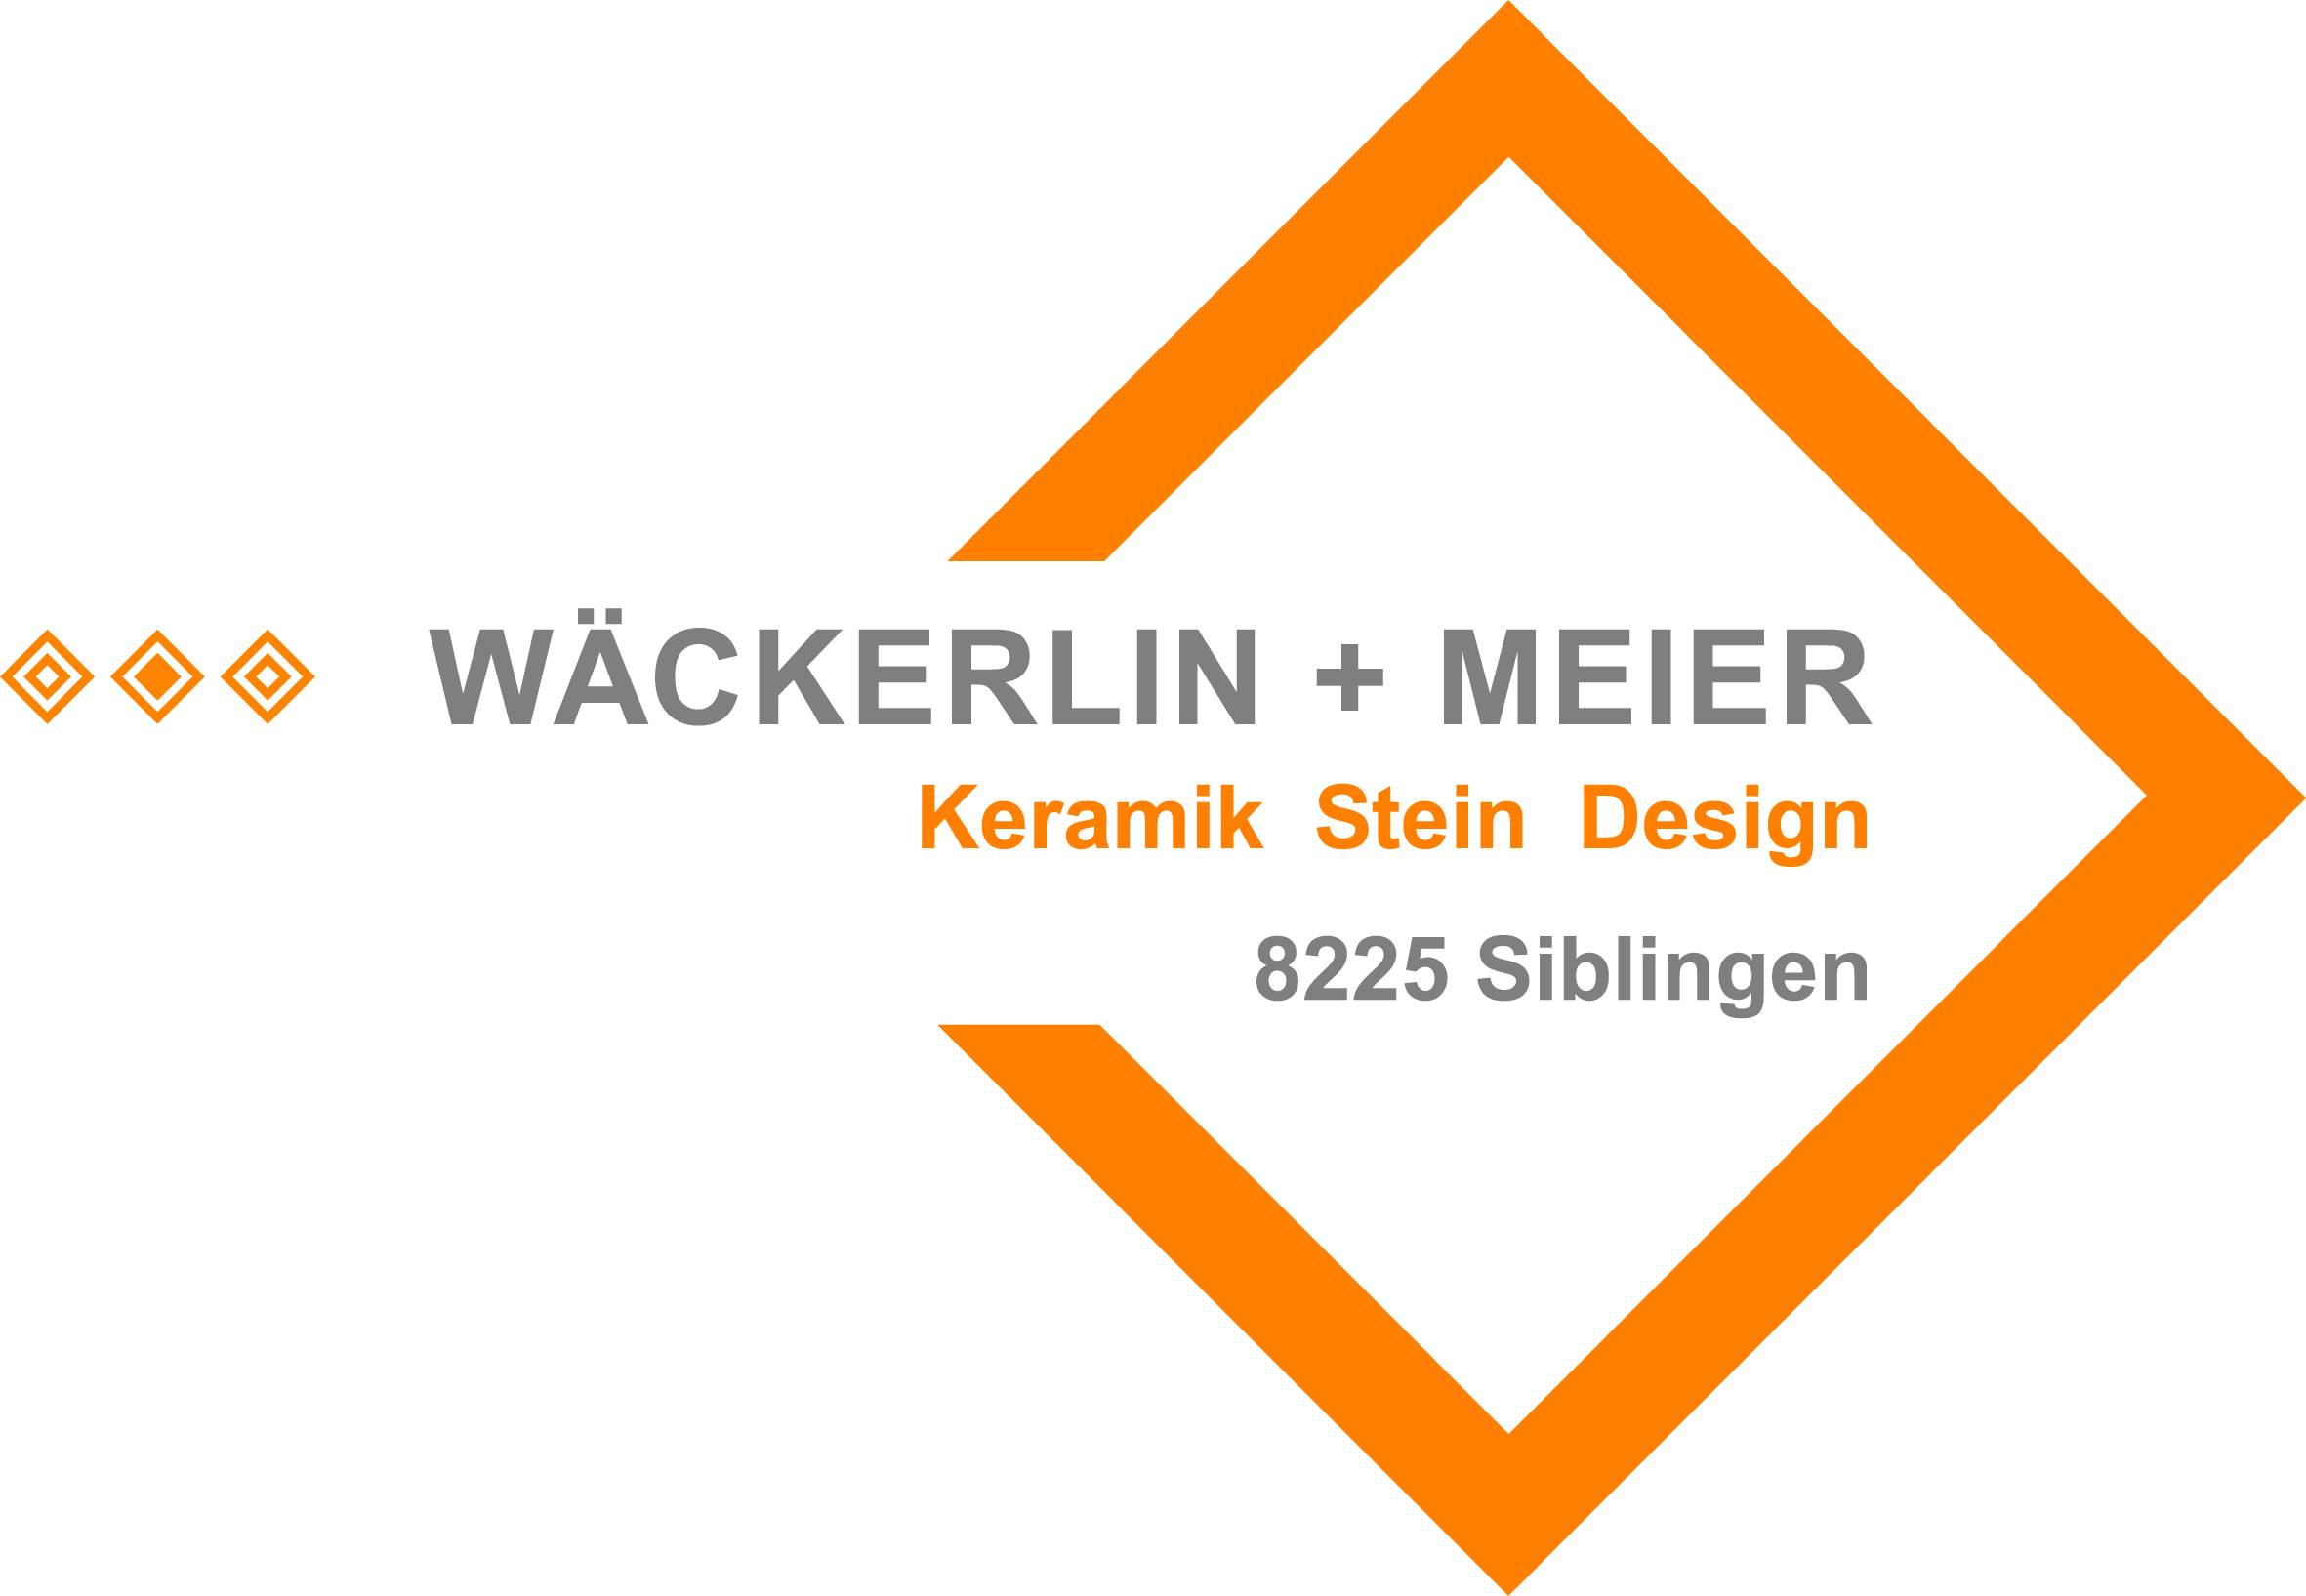 Wäckerlin + Meier